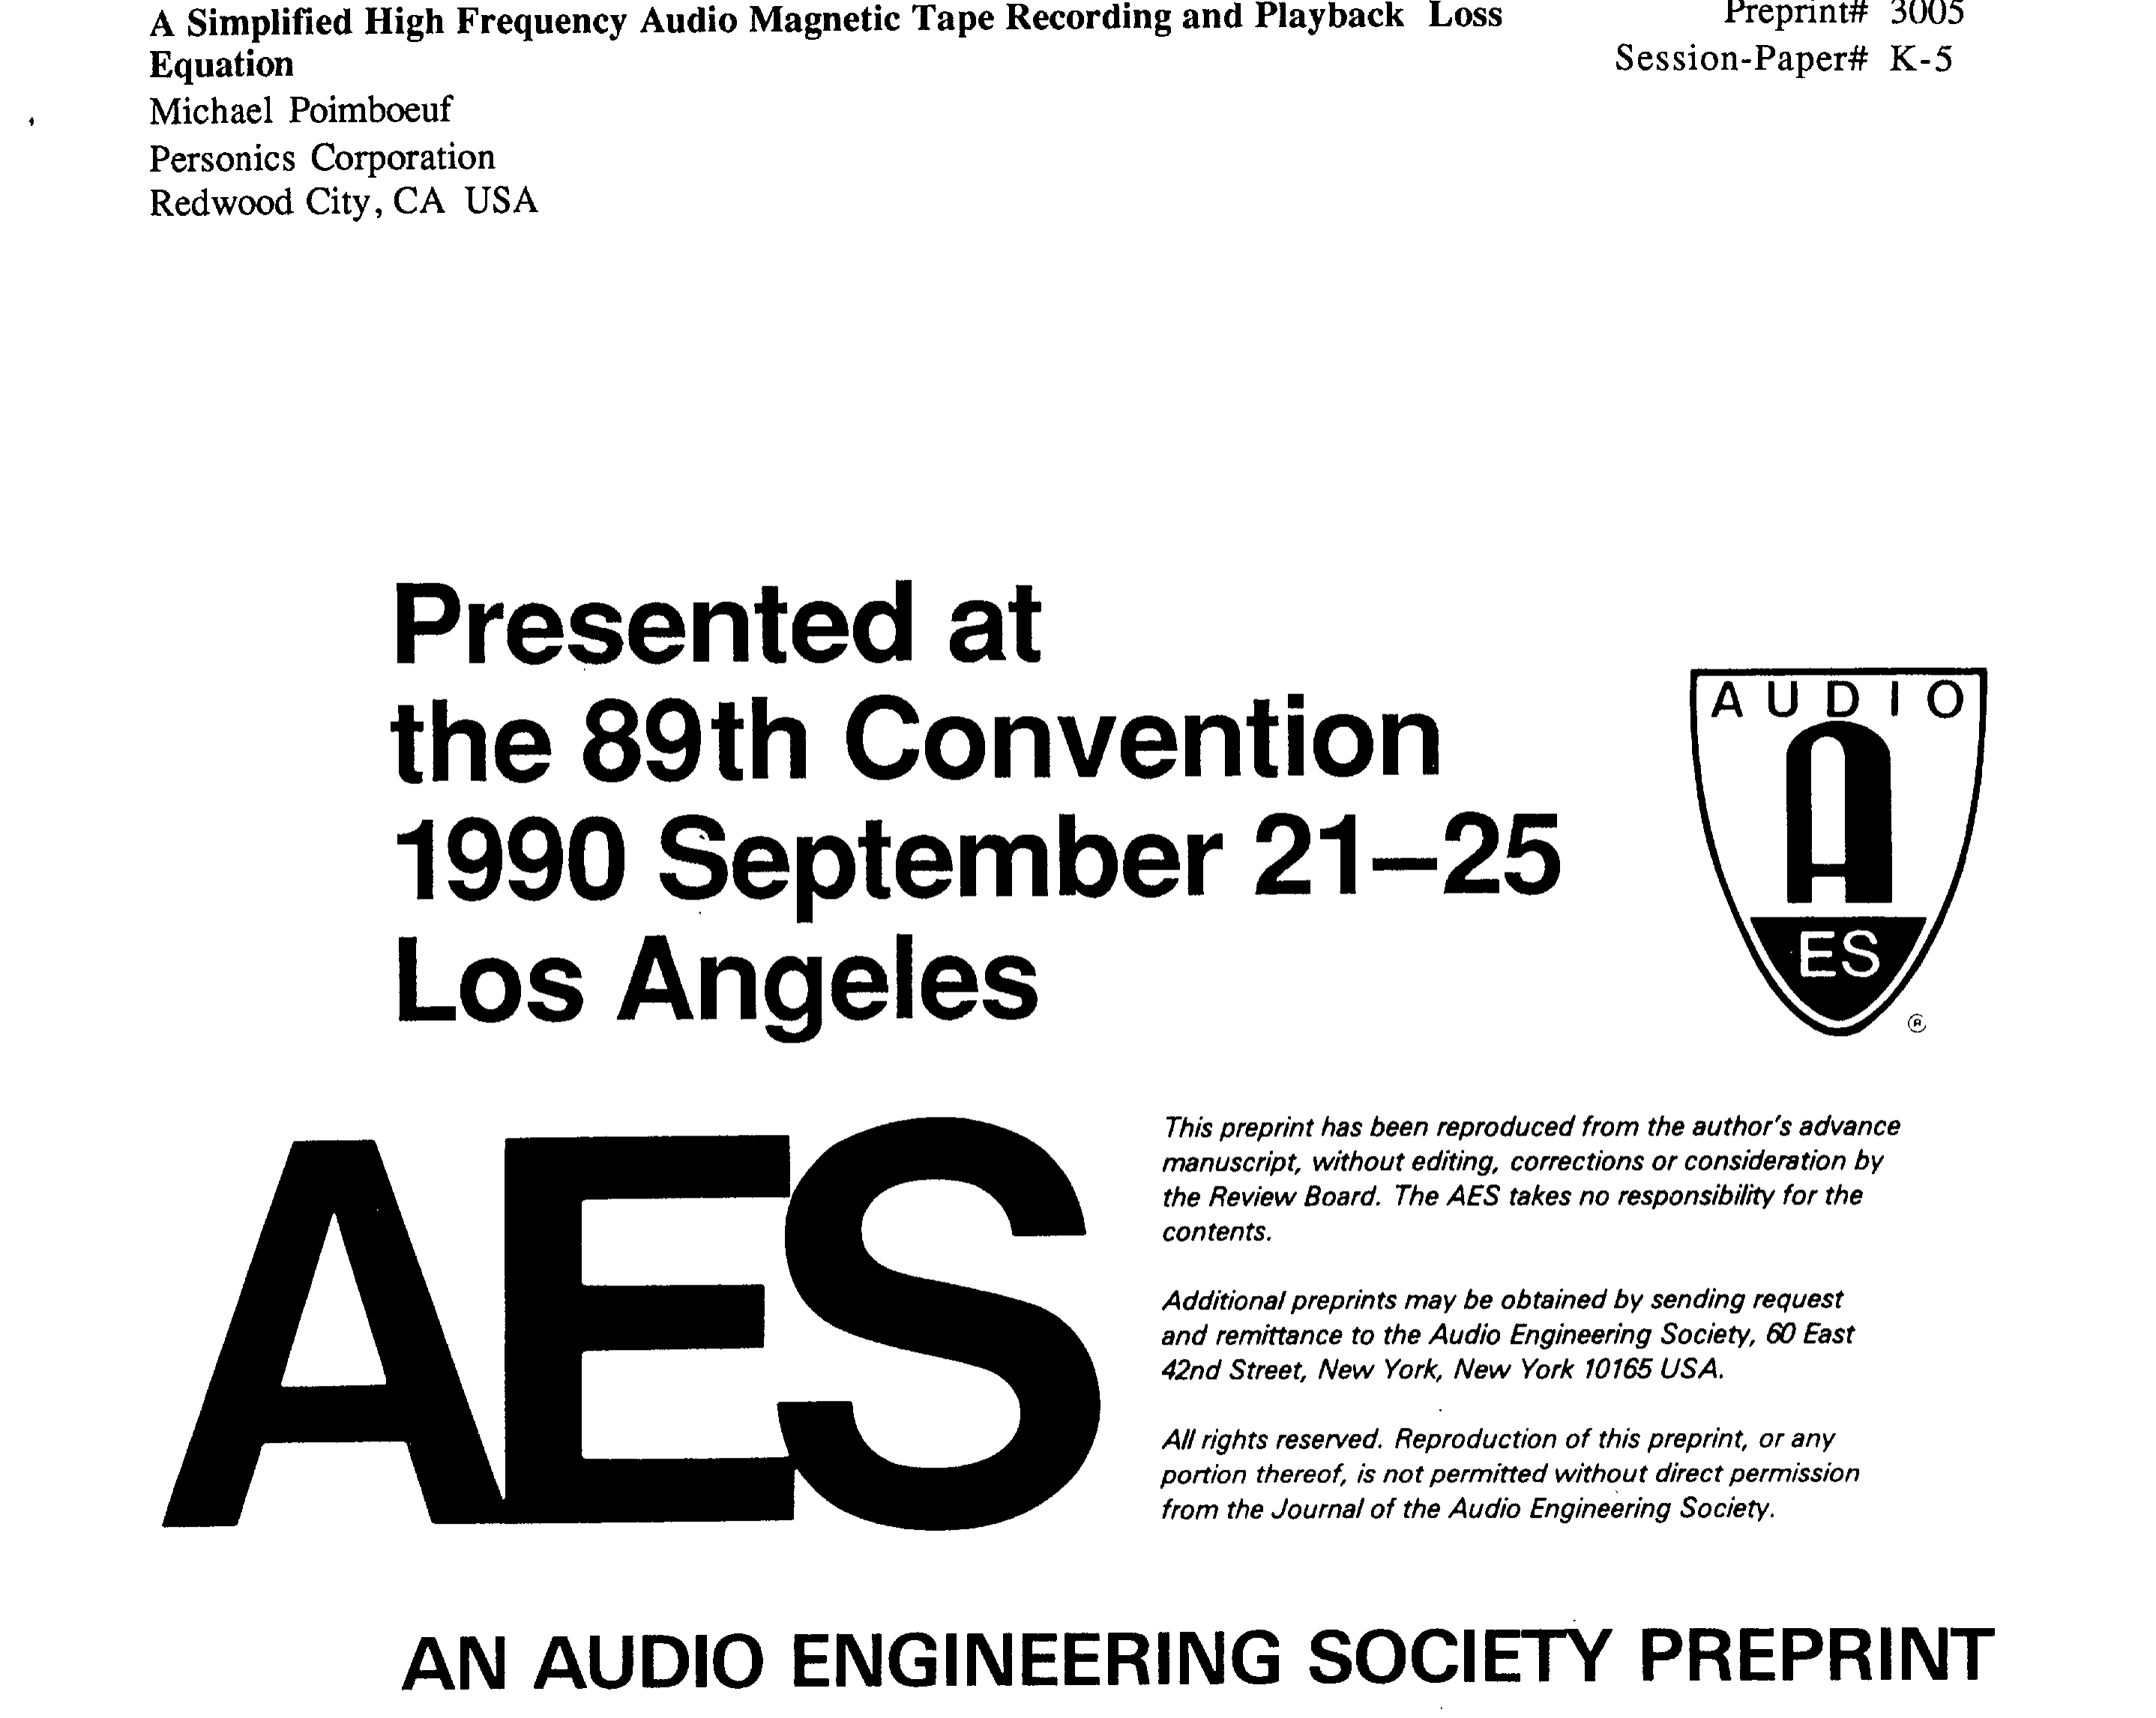 aes e library a a simplified high frequency audio magnetic tape